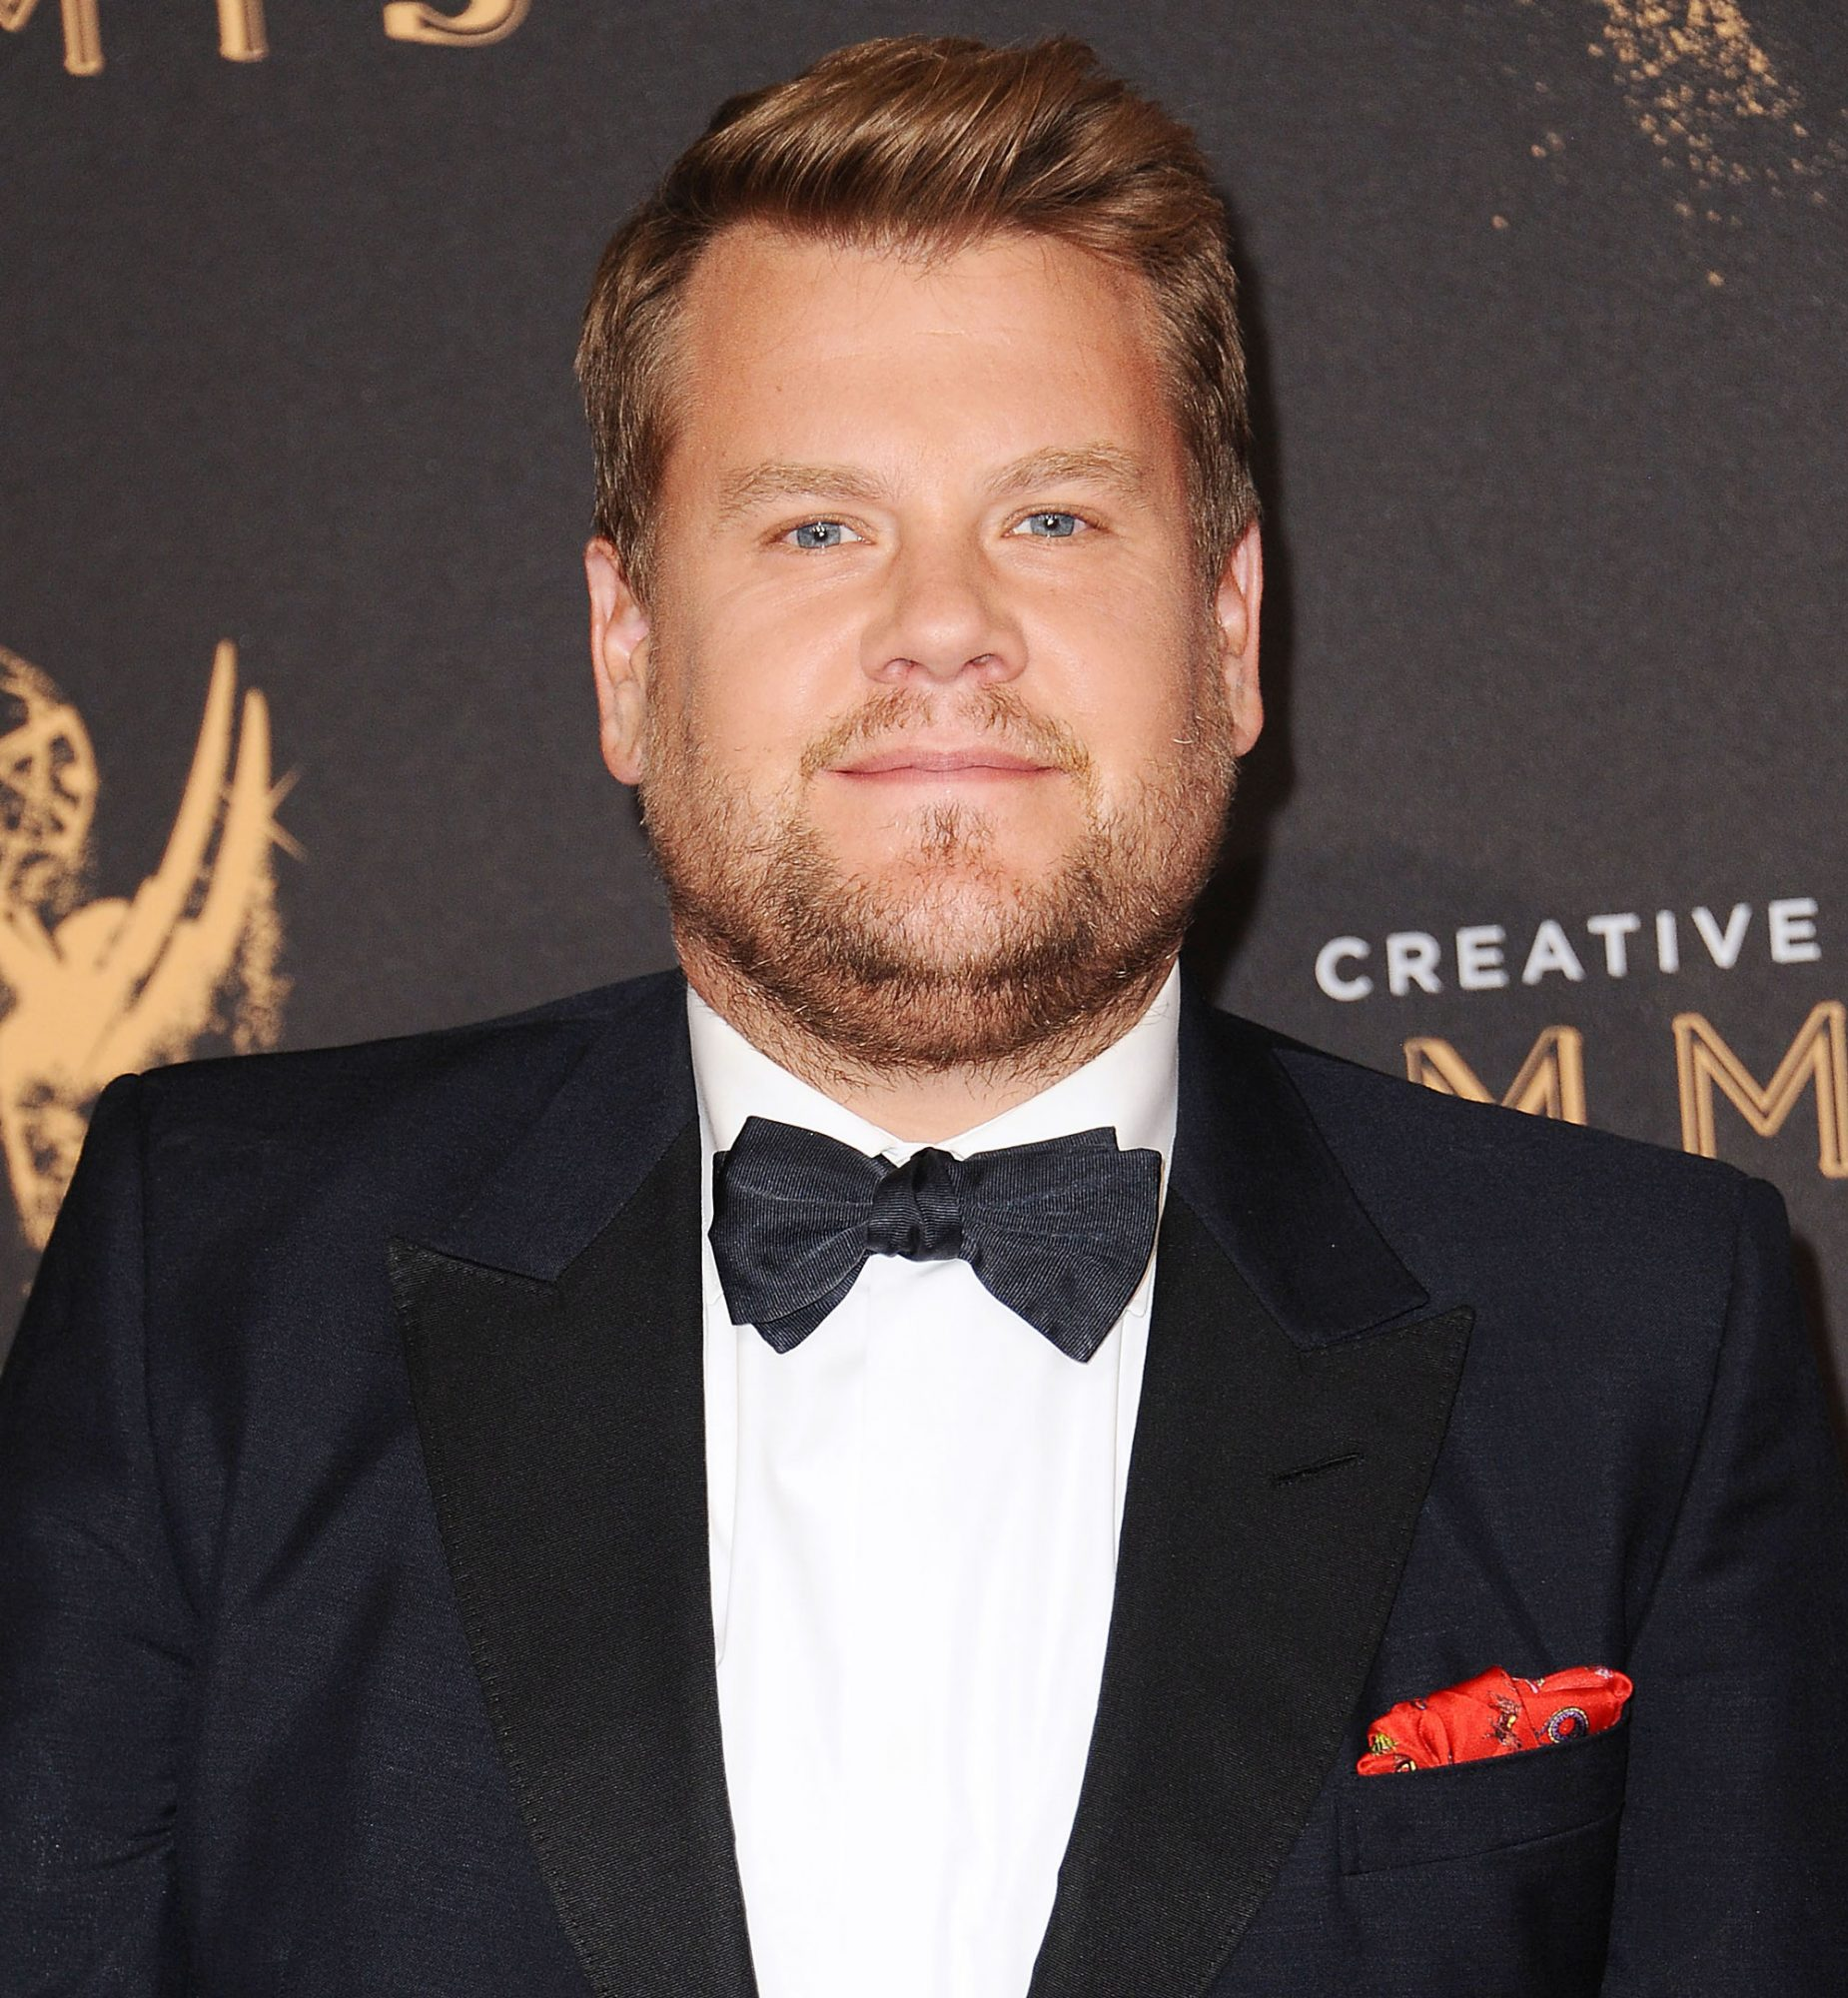 Here's How James Corden Responded to the Sean Spicer Kiss Backlash